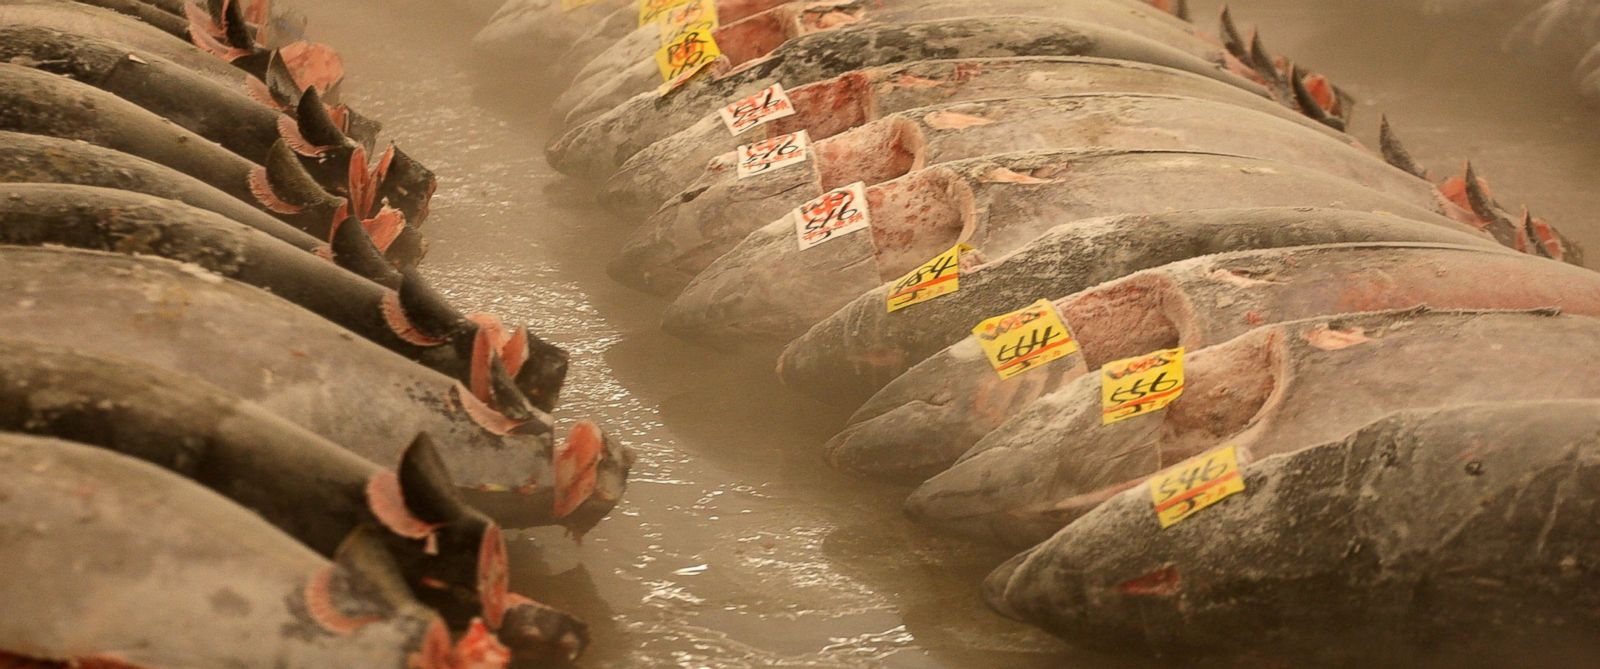 PHOTO: Frozen tuna lie on the ground during the new years first auction at the Tsukiji fish market on Jan. 5, 2010 in Tokyo.